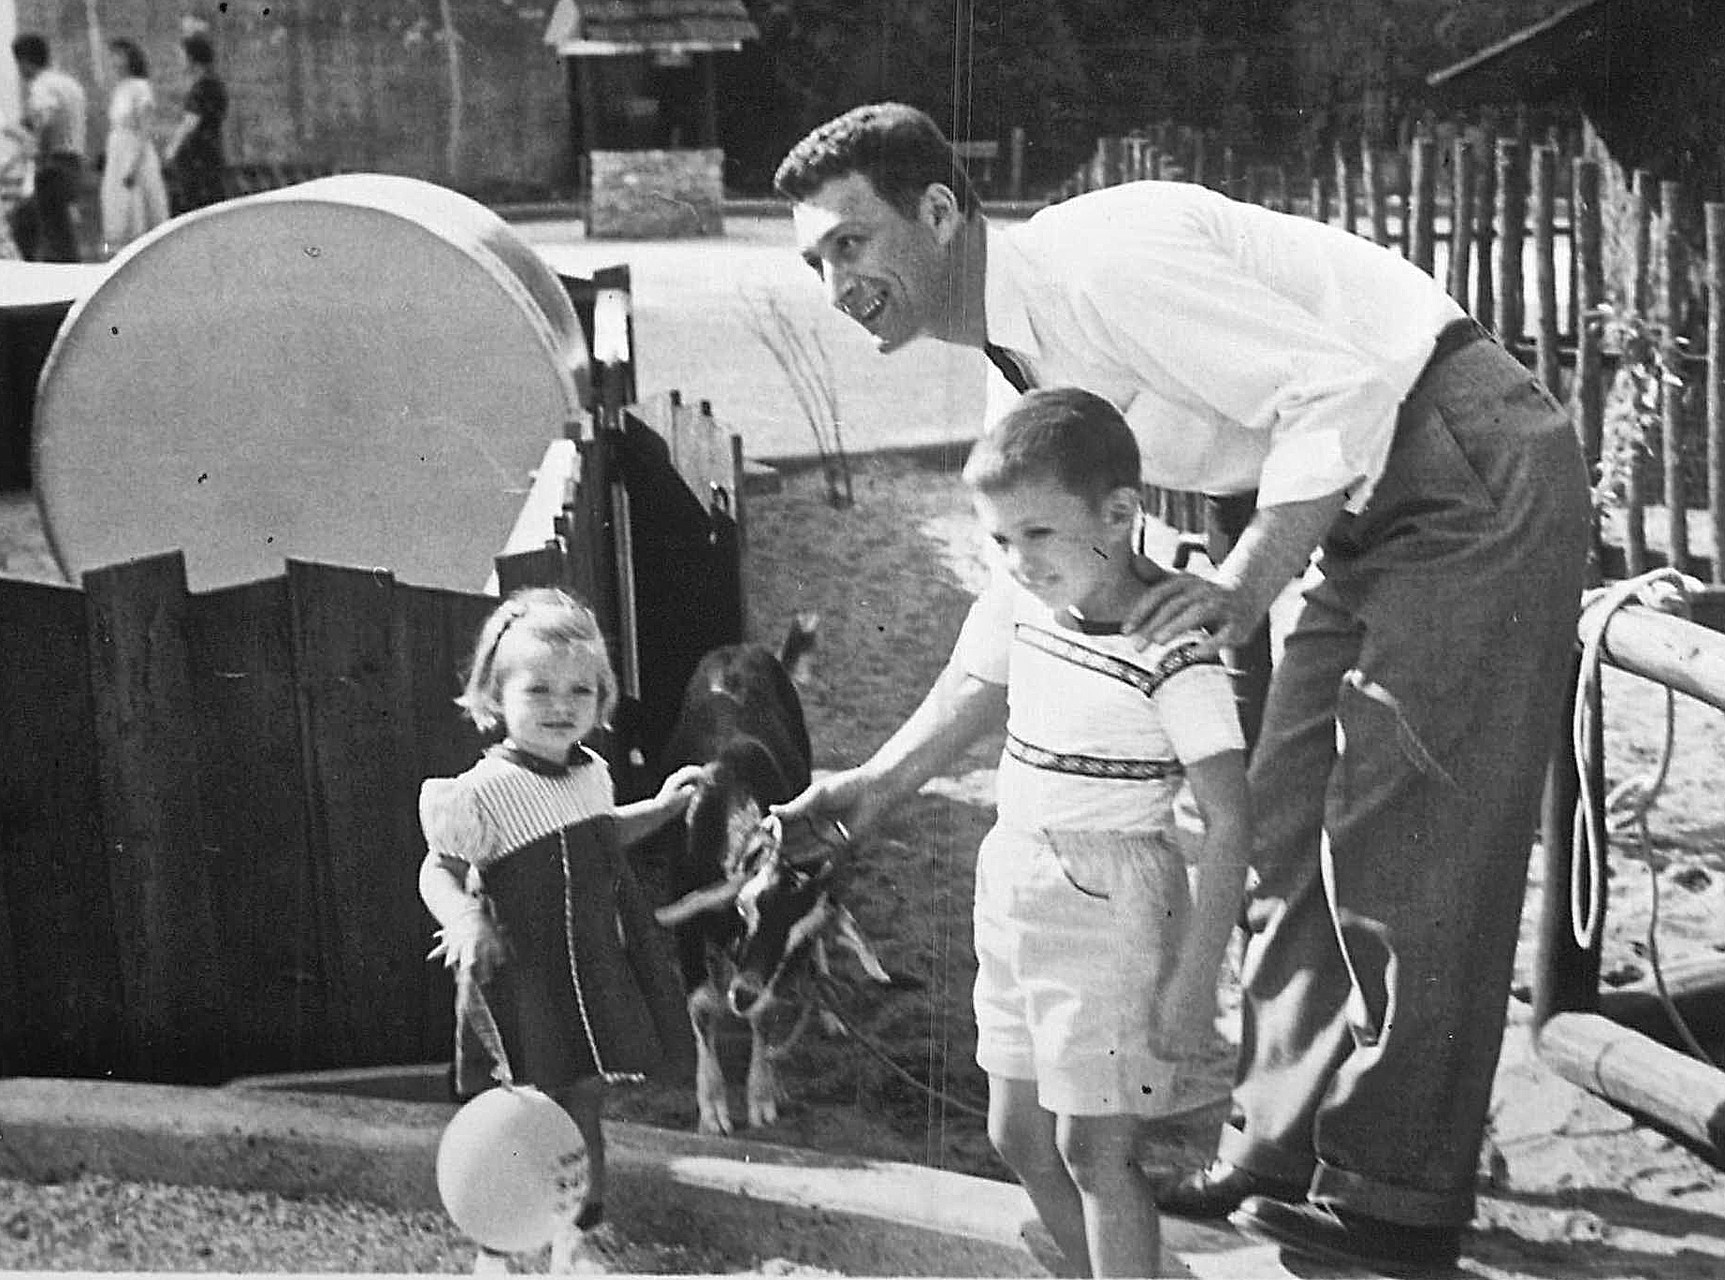 Cindy & John with their dad, Jack Wagner  1950s